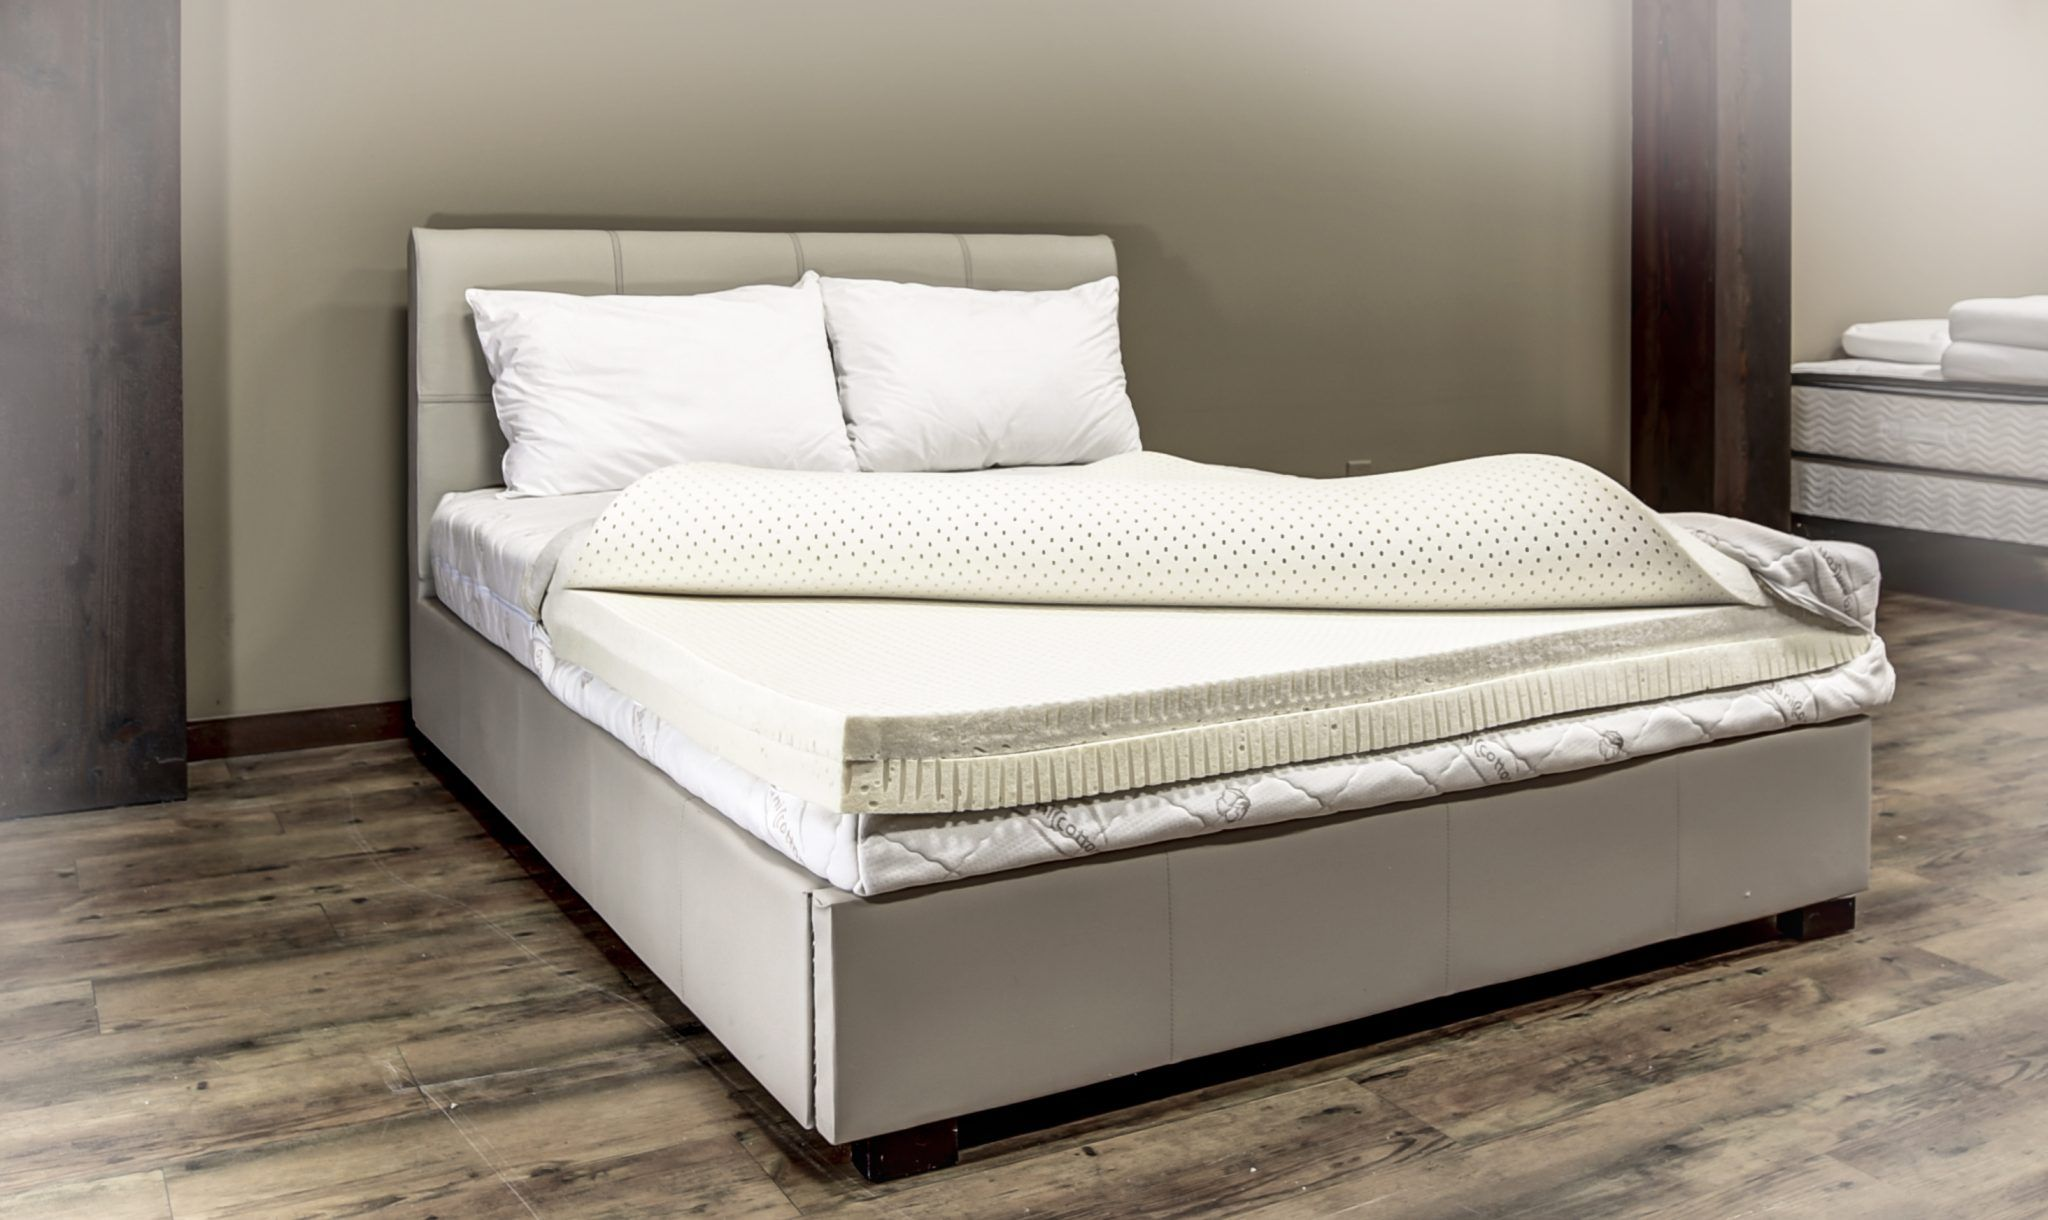 best mattress 2018 consumer reports mattresses pinterest